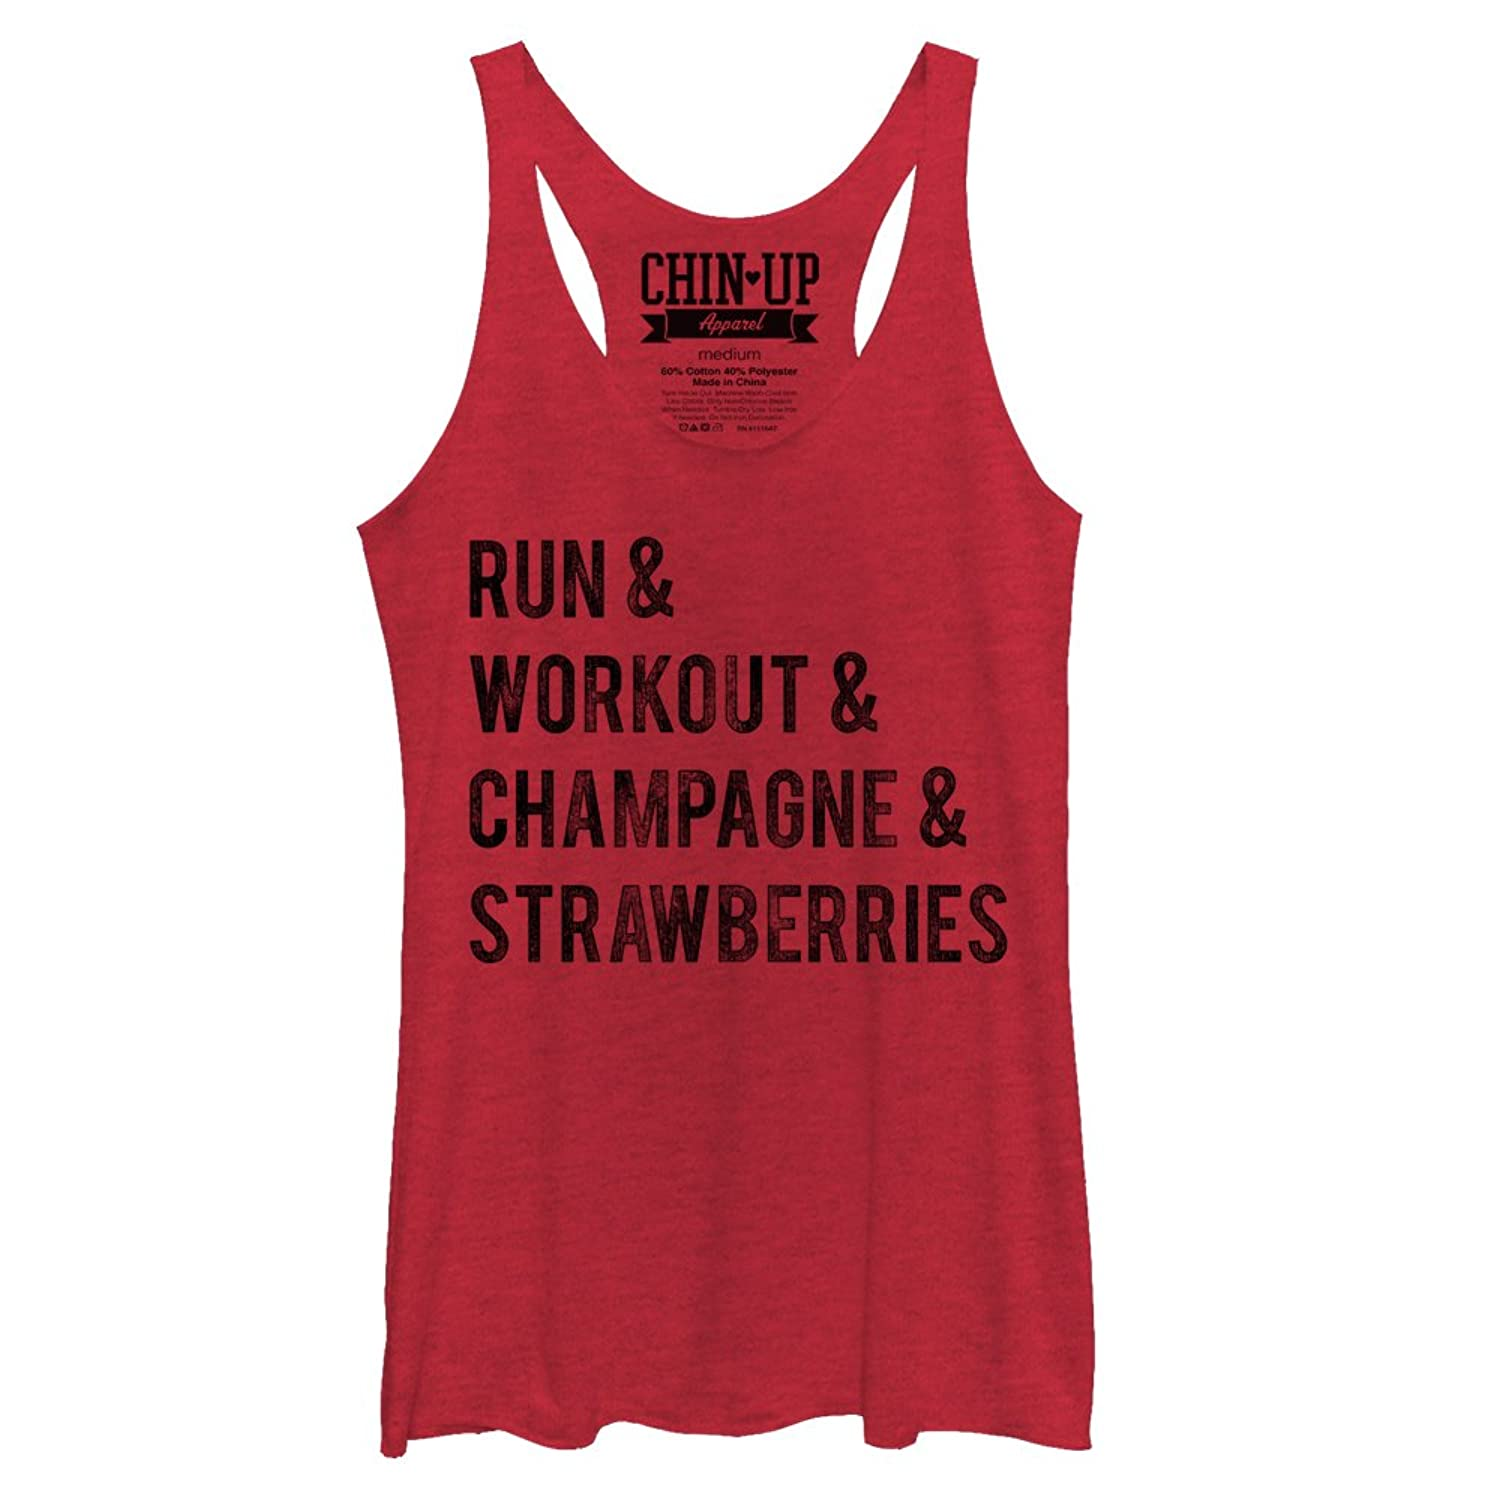 CHIN UP Champagne and Strawberries Womens Graphic Racerback Tank